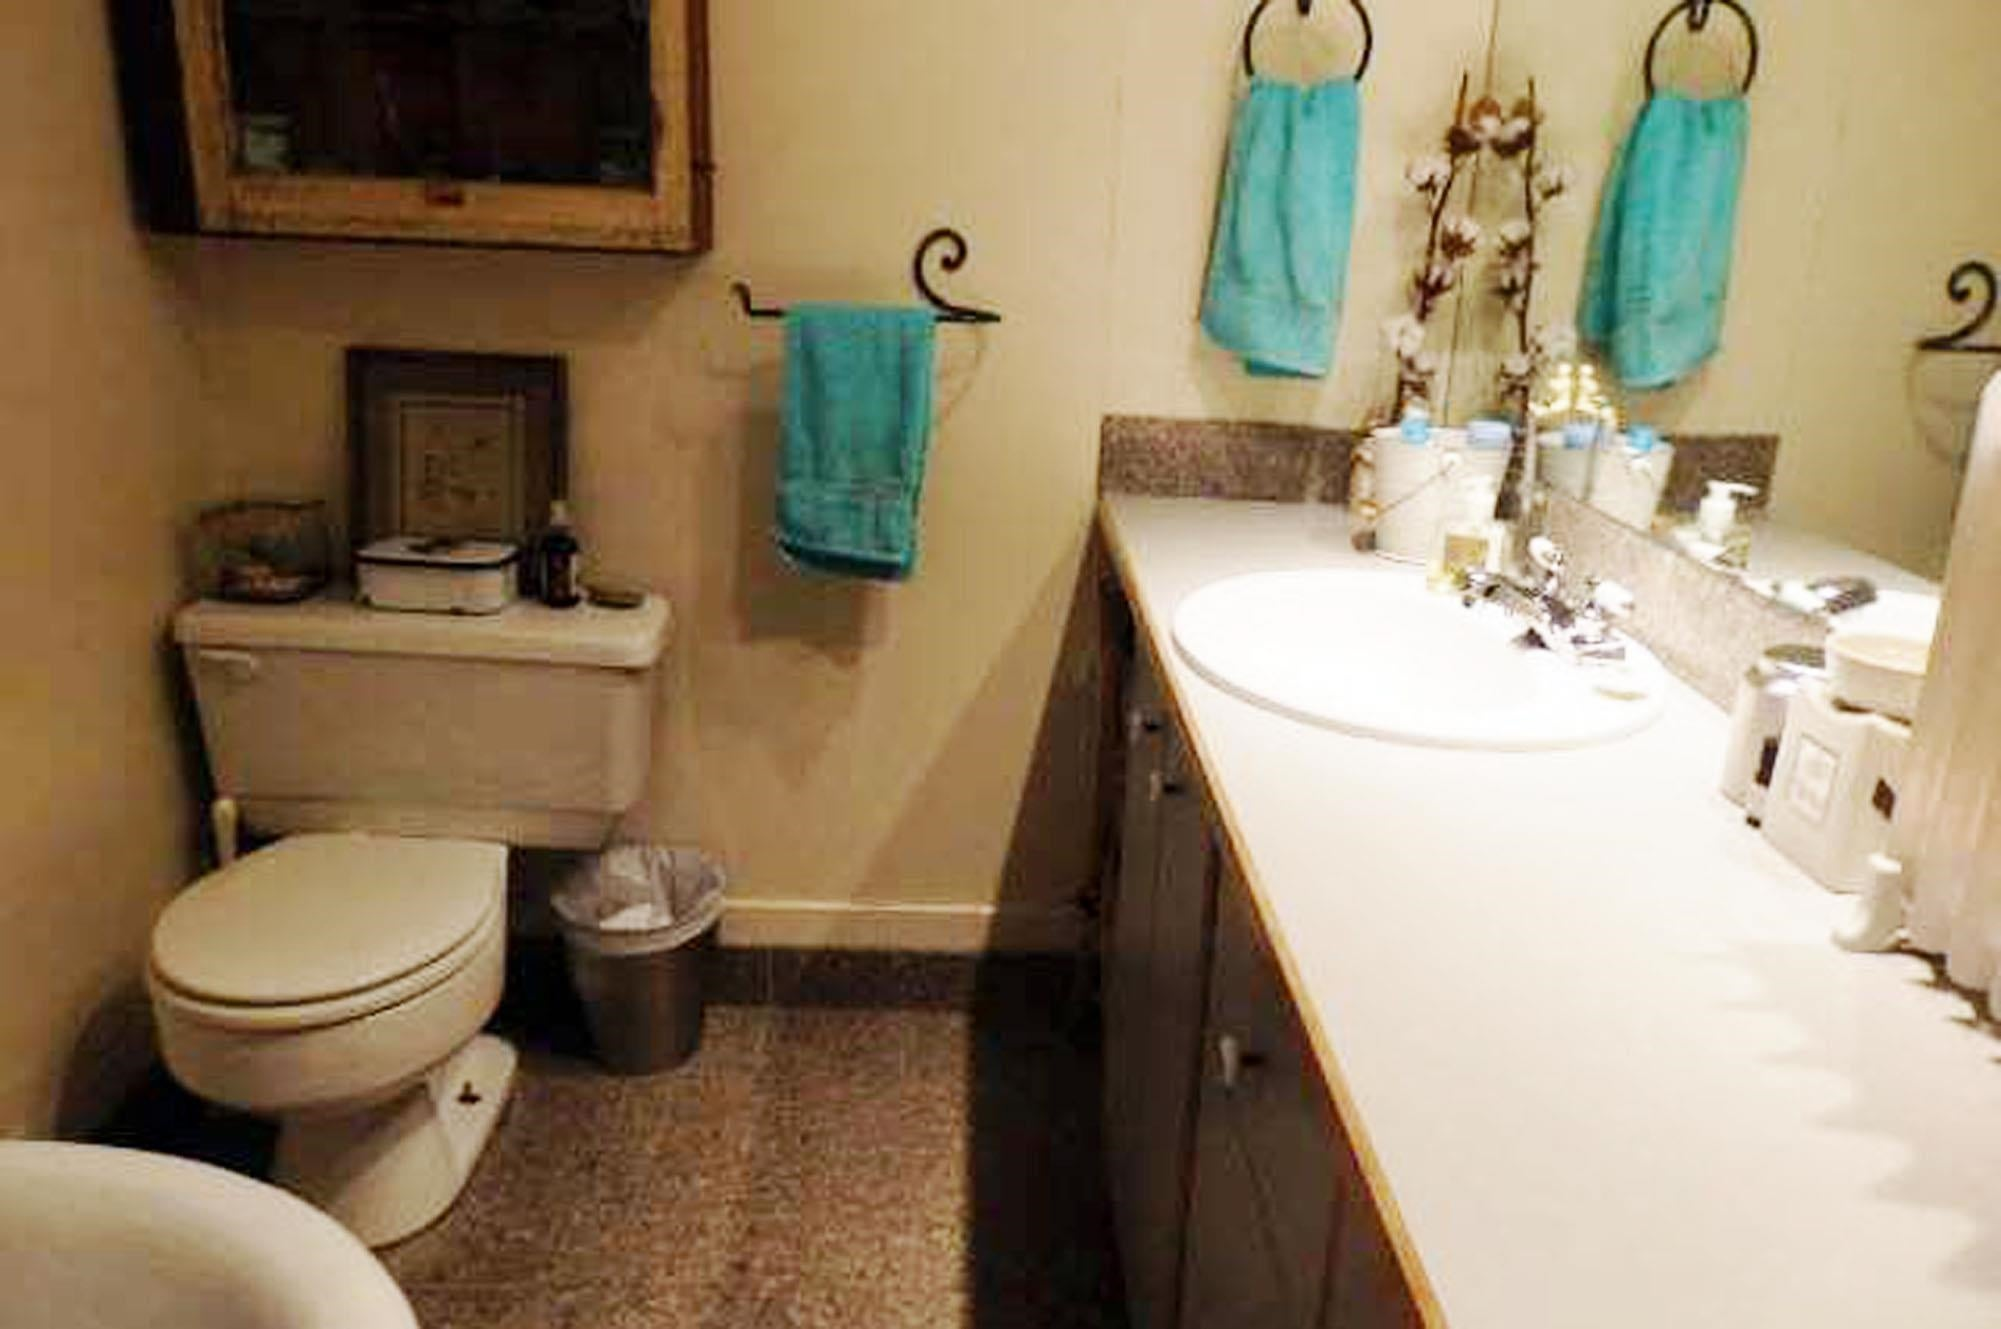 222 E 3RD STREET - Lower Lonsdale House/Single Family for sale, 3 Bedrooms (R2622037) - #6